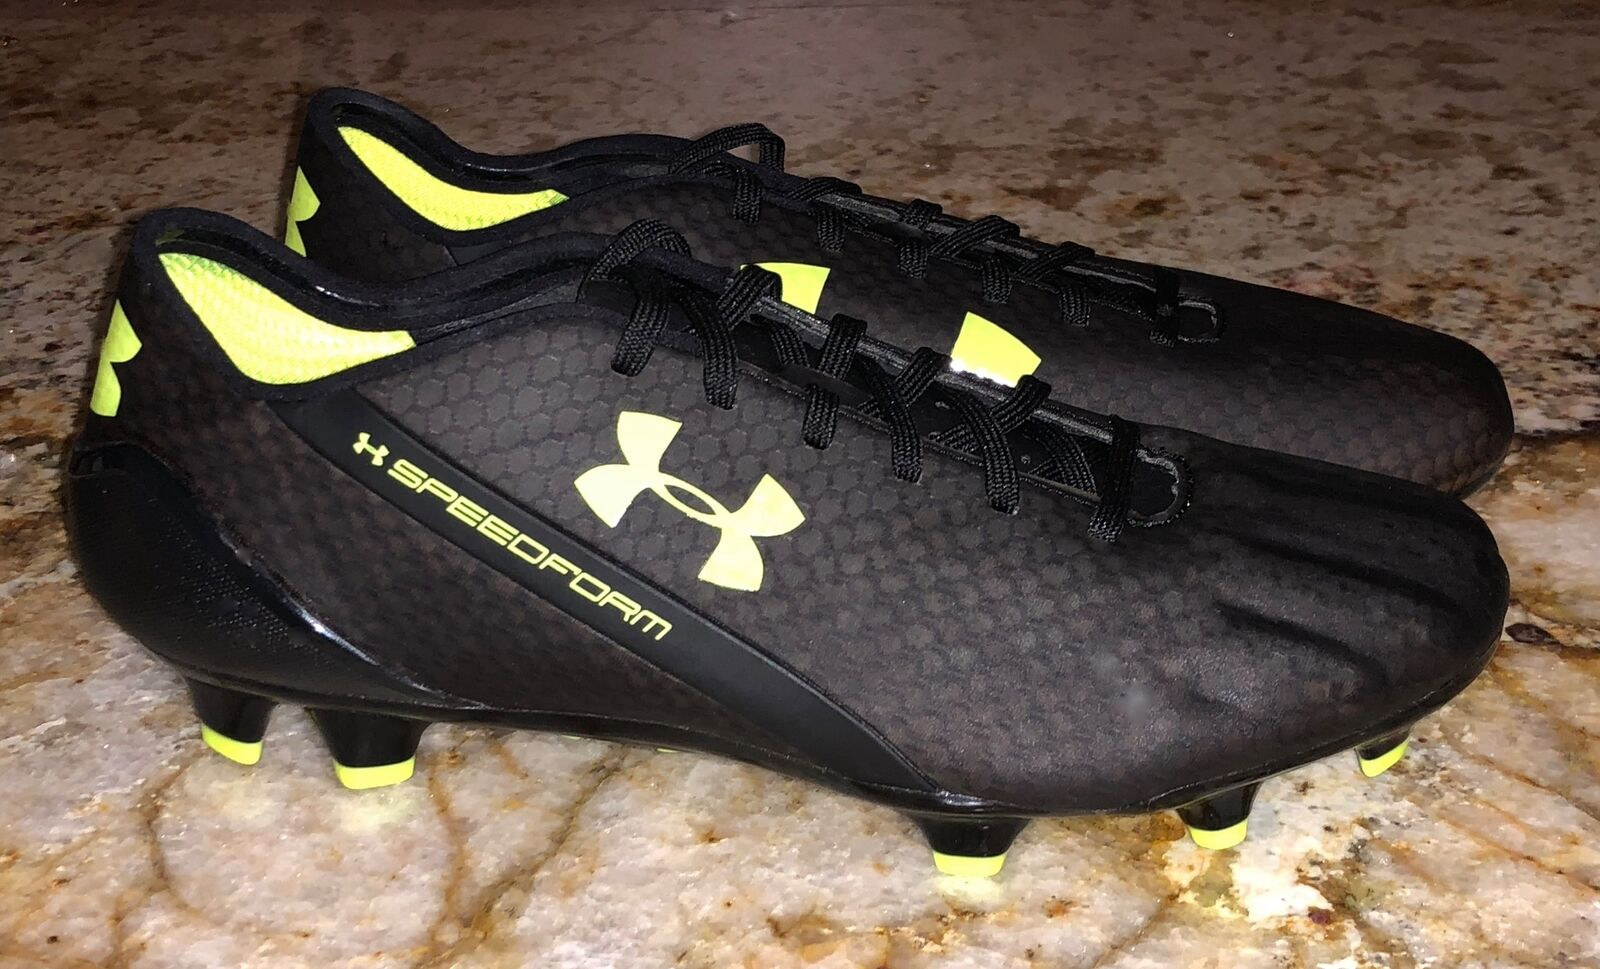 UNDER ARMOUR SpeedForm CRM FG nero giallo Soccer Soccer Soccer Cleats NEW Uomo Sz 7.5 10.5 bd1774